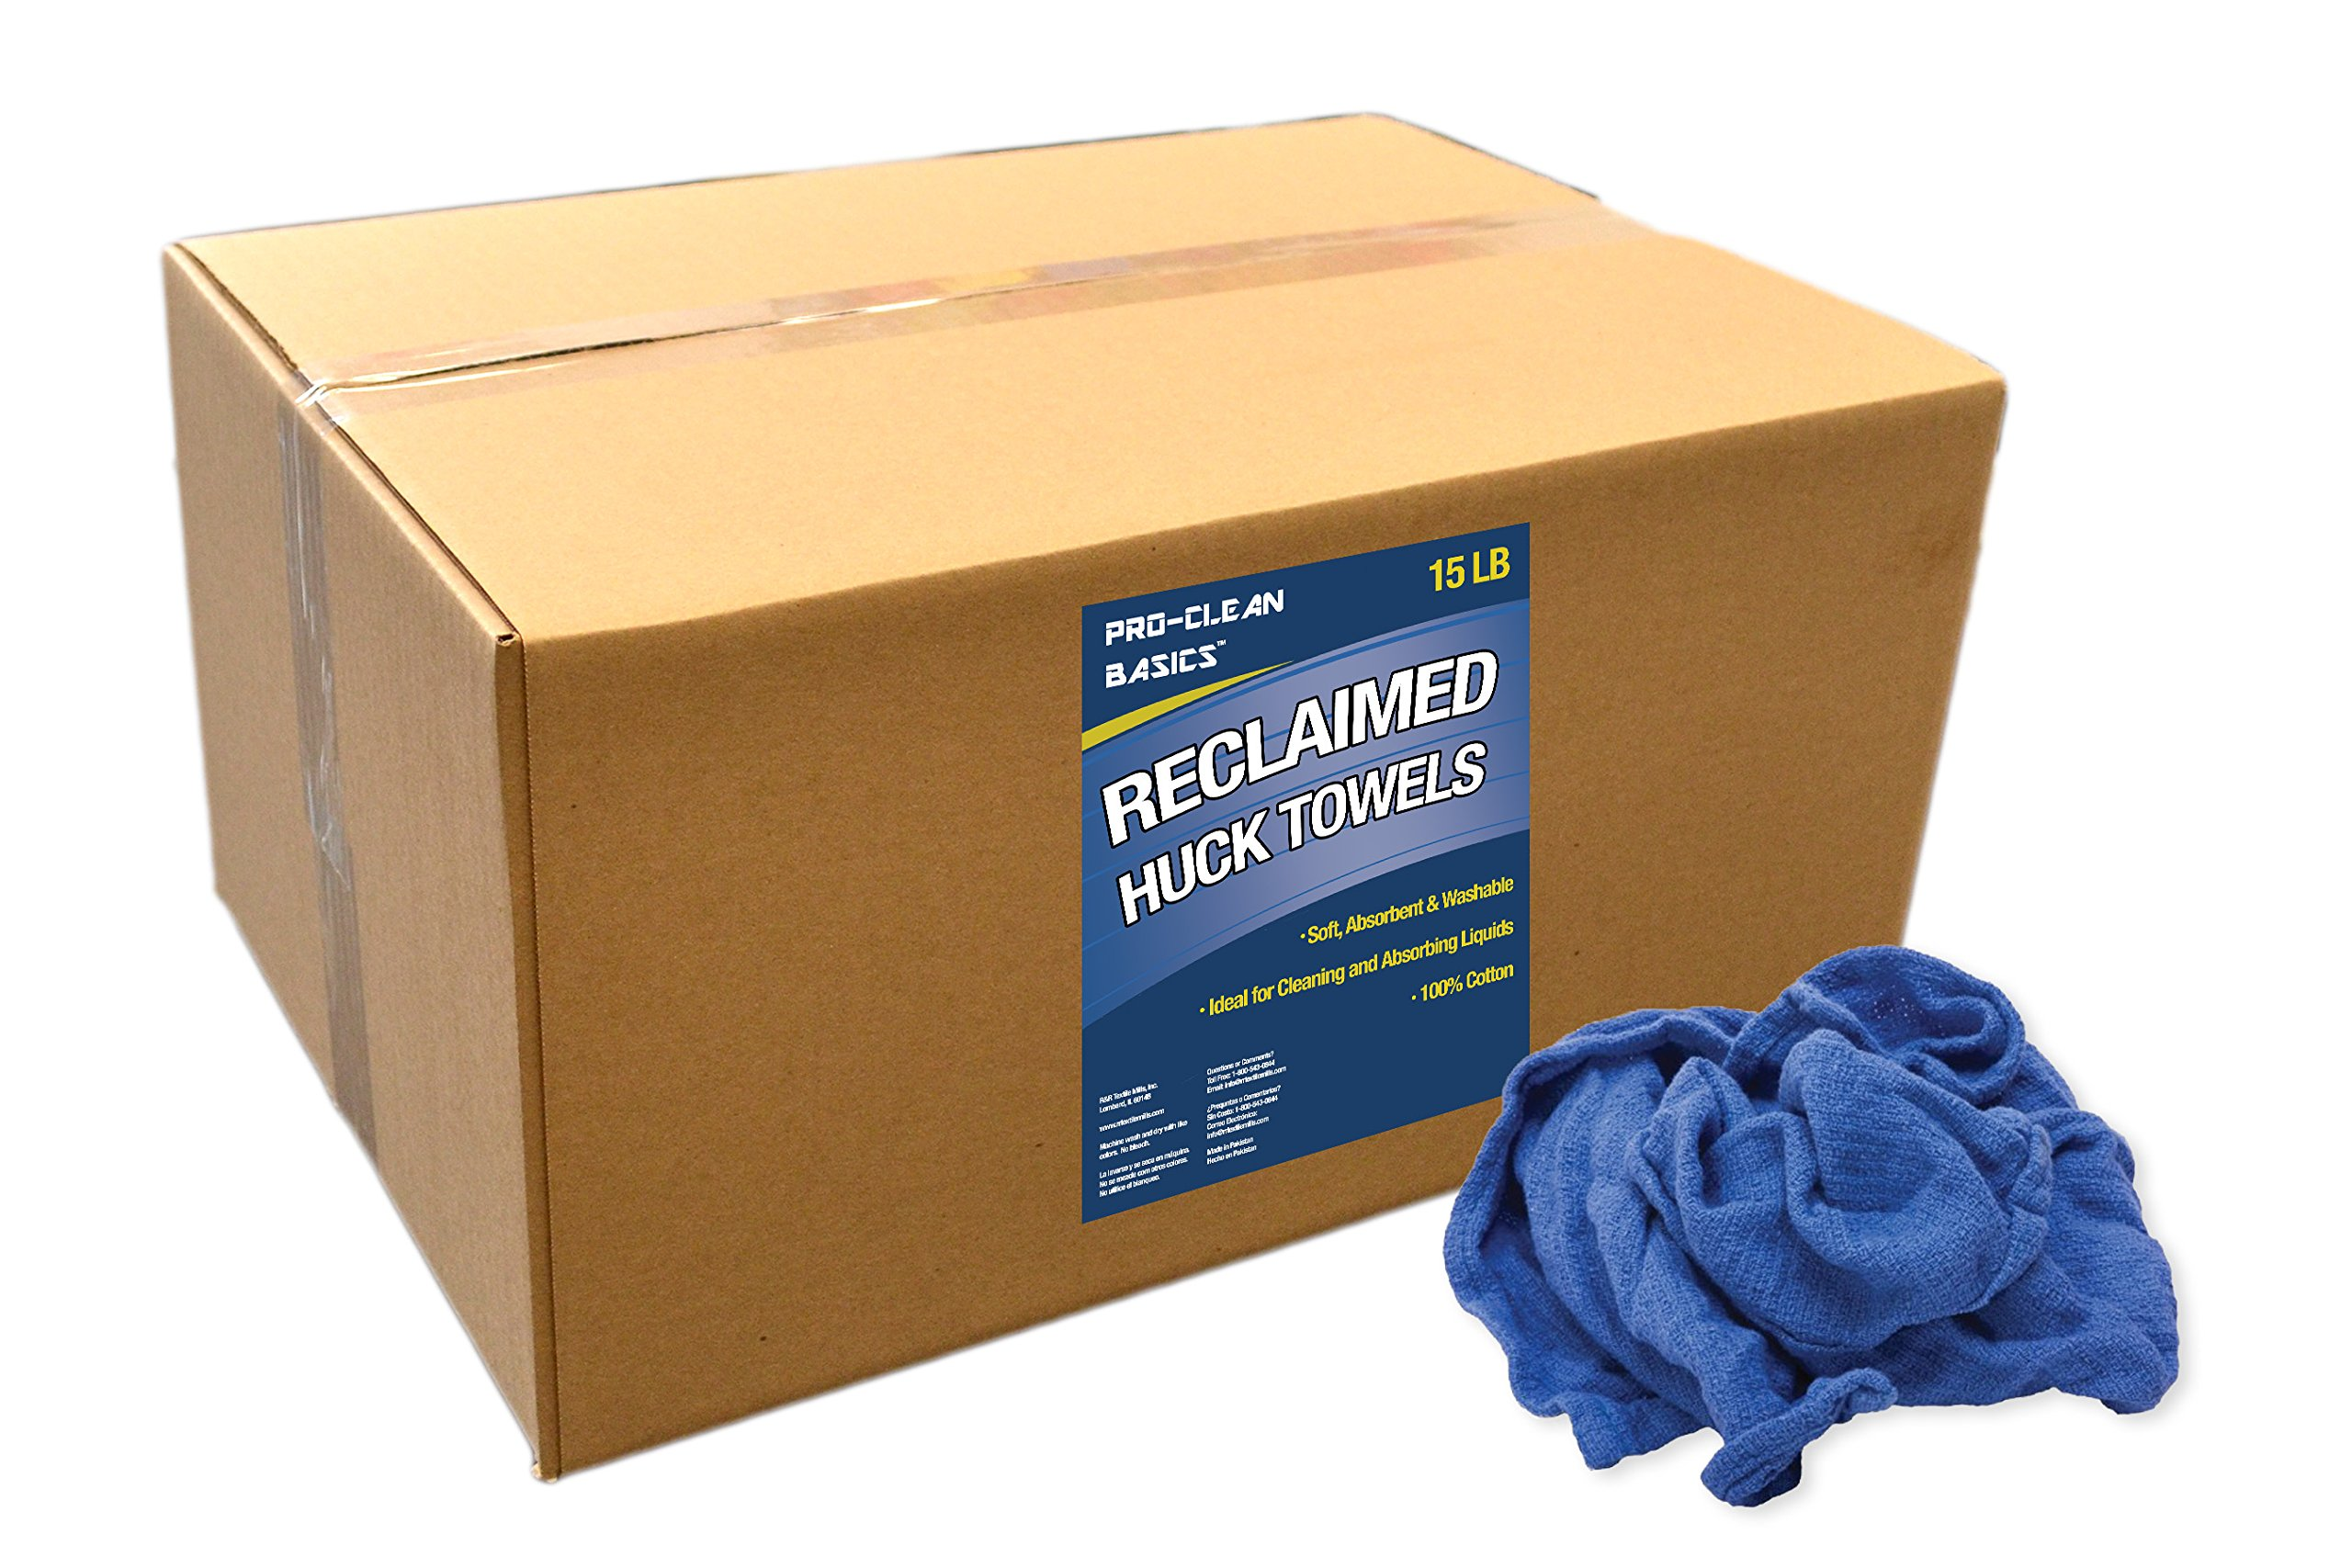 Pro-Clean Basics Reclaimed Huck or Surgical Towels: 15 lb. Box